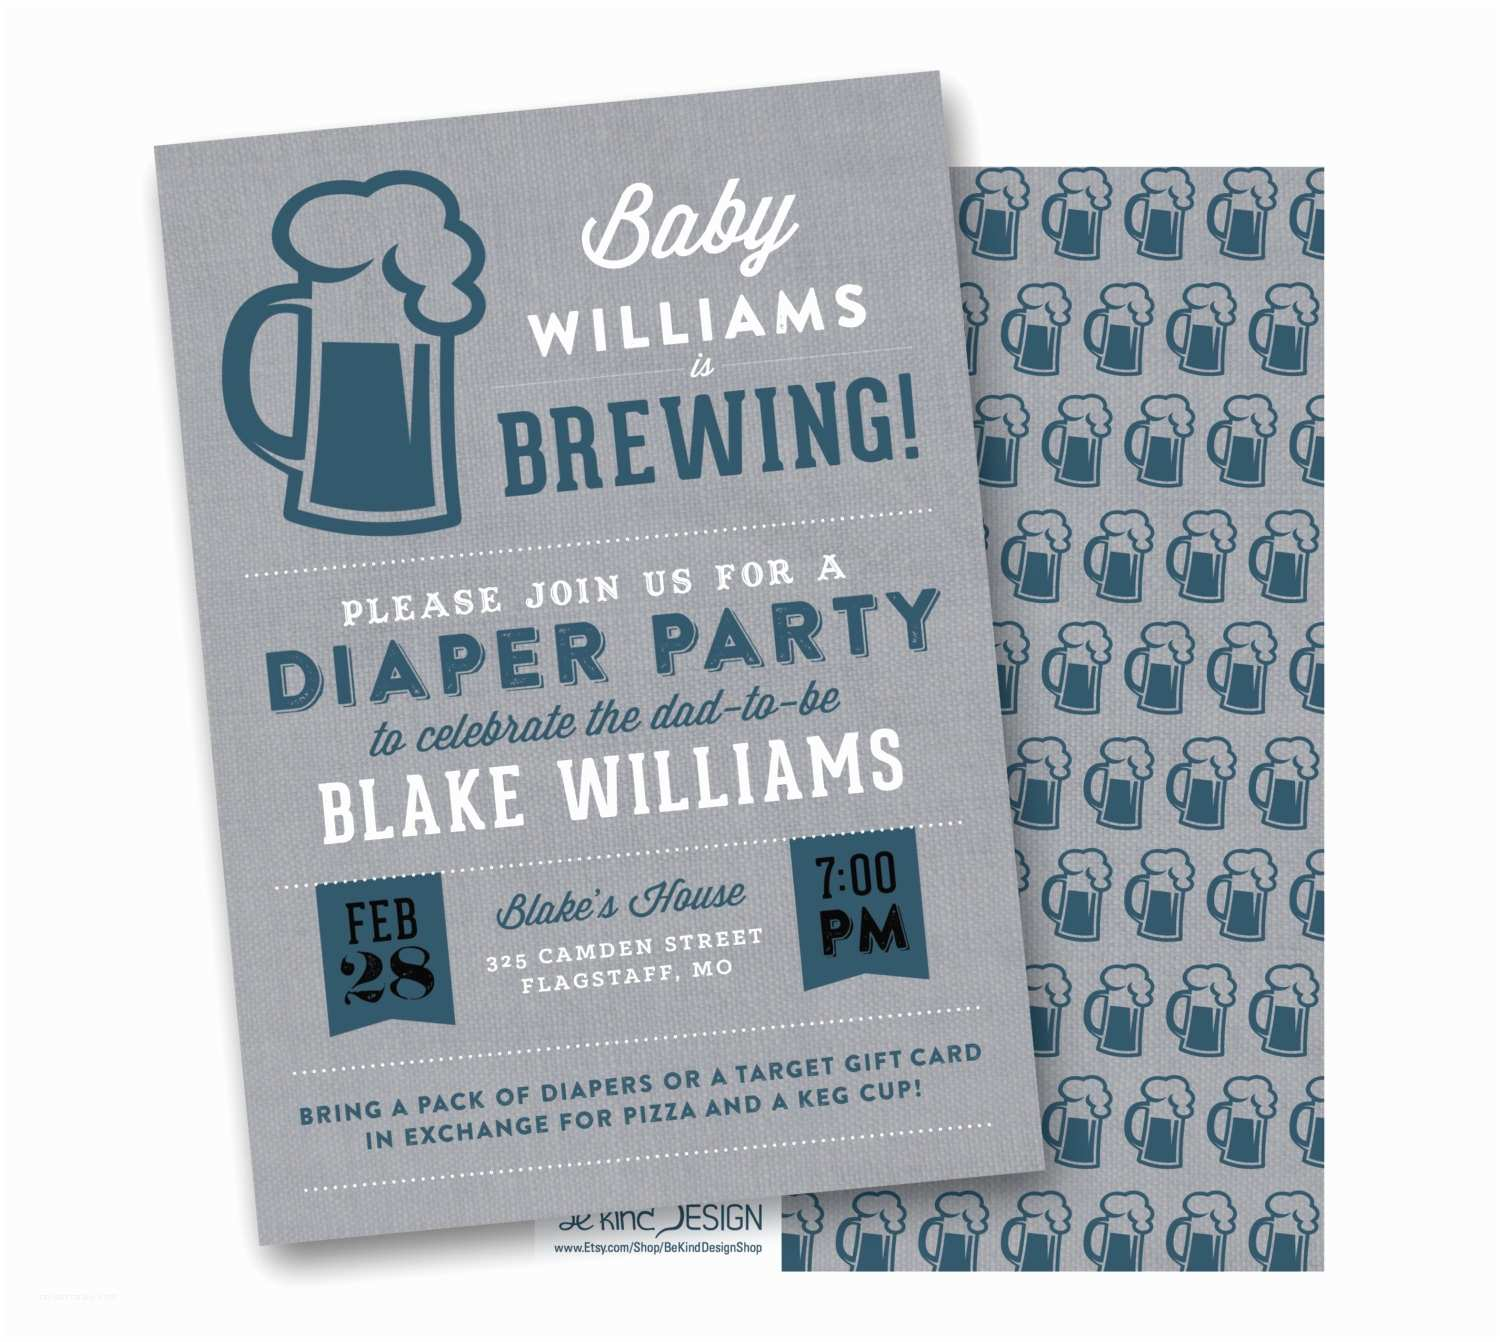 Diaper Party Invitations Diaper Party Invitation Baby is Brewing